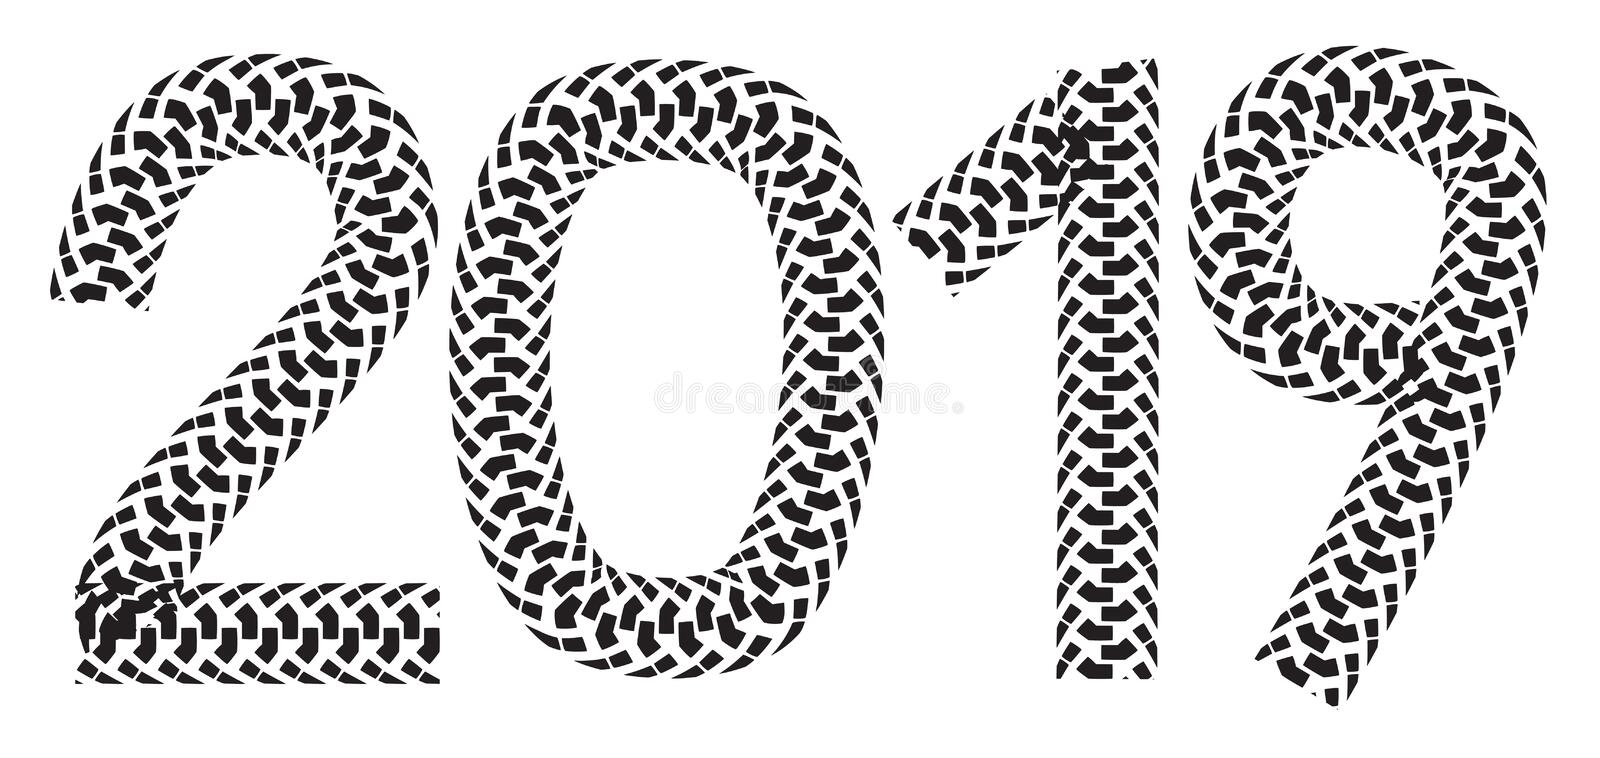 2019 inscription made from motorcycle tire tracks royalty free illustration